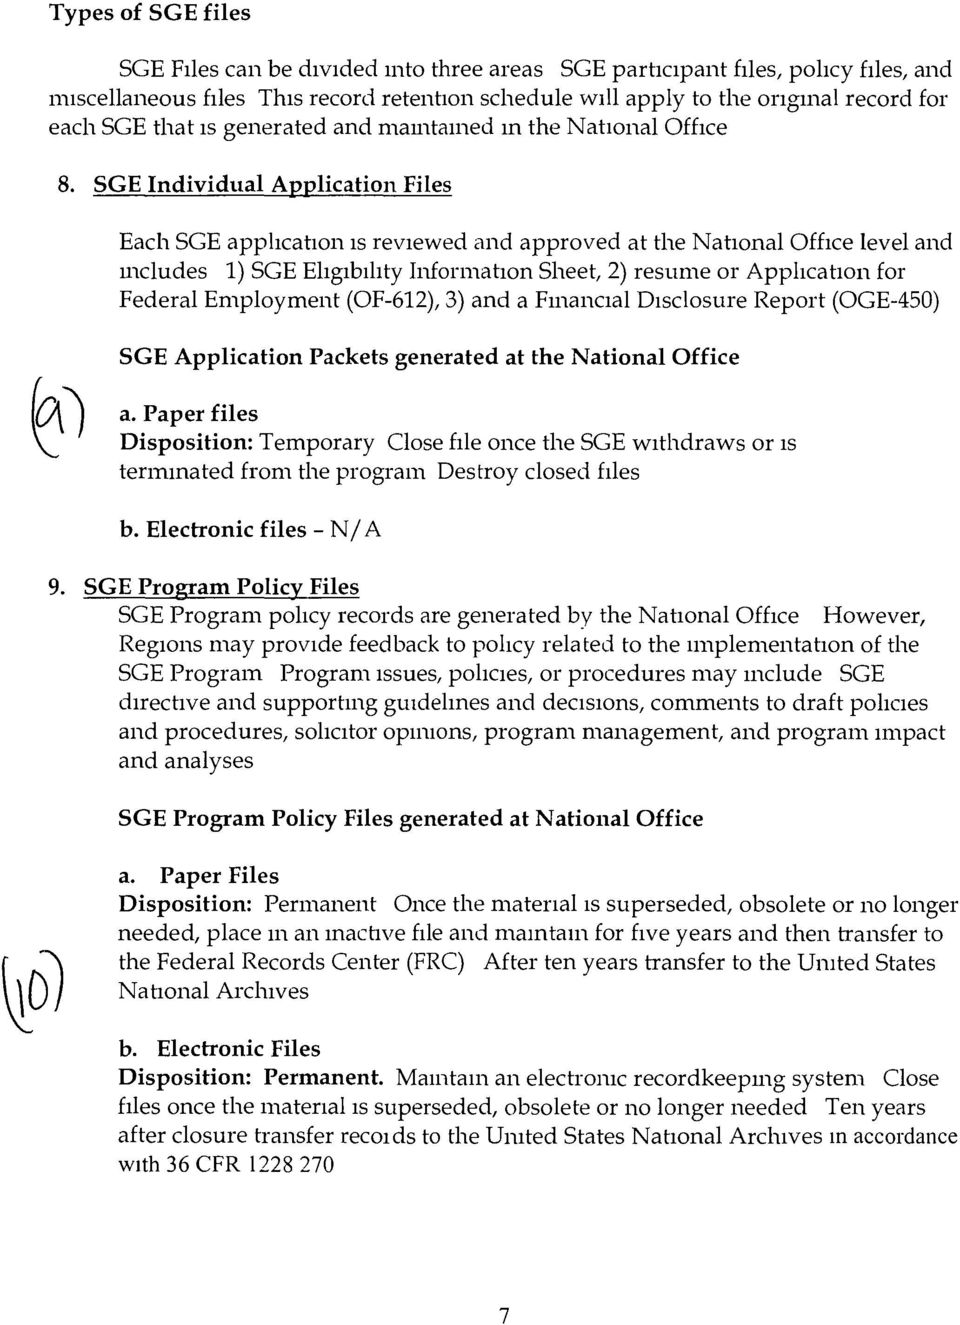 5GE Individual Application Files Each SGE apphcation ISreviewed and approved at the National Office level and mcludes 1) SGE Ehgirhty Information Sheet, 2) resume or Application for Federal